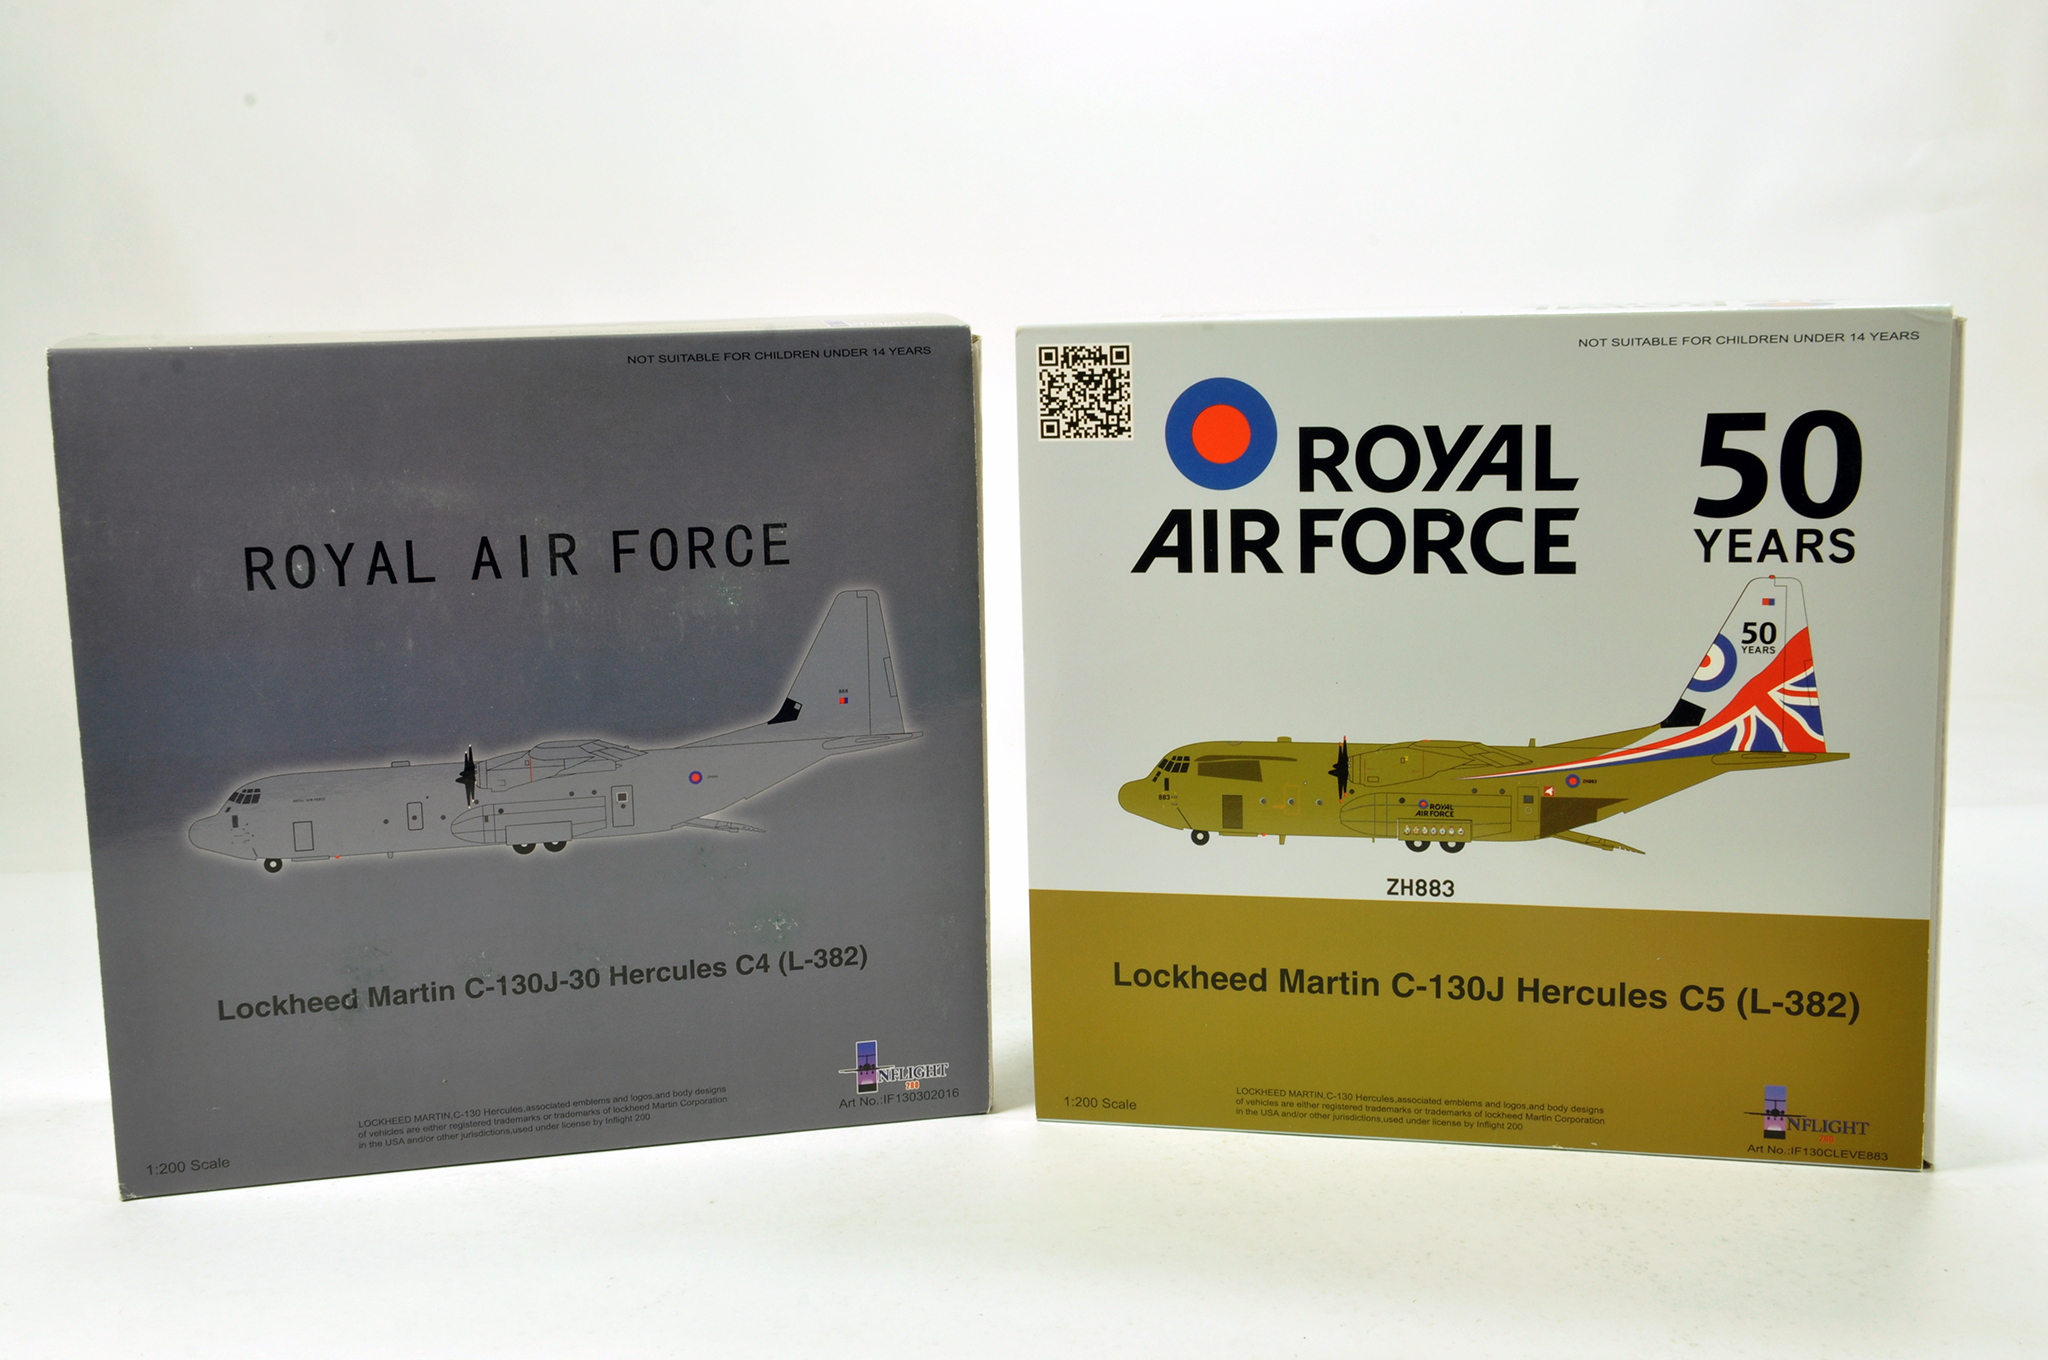 Lot 35 - Inflight Models 1/200 Diecast Aircraft Models comprising Lockheed Martin hercules issues in RAF